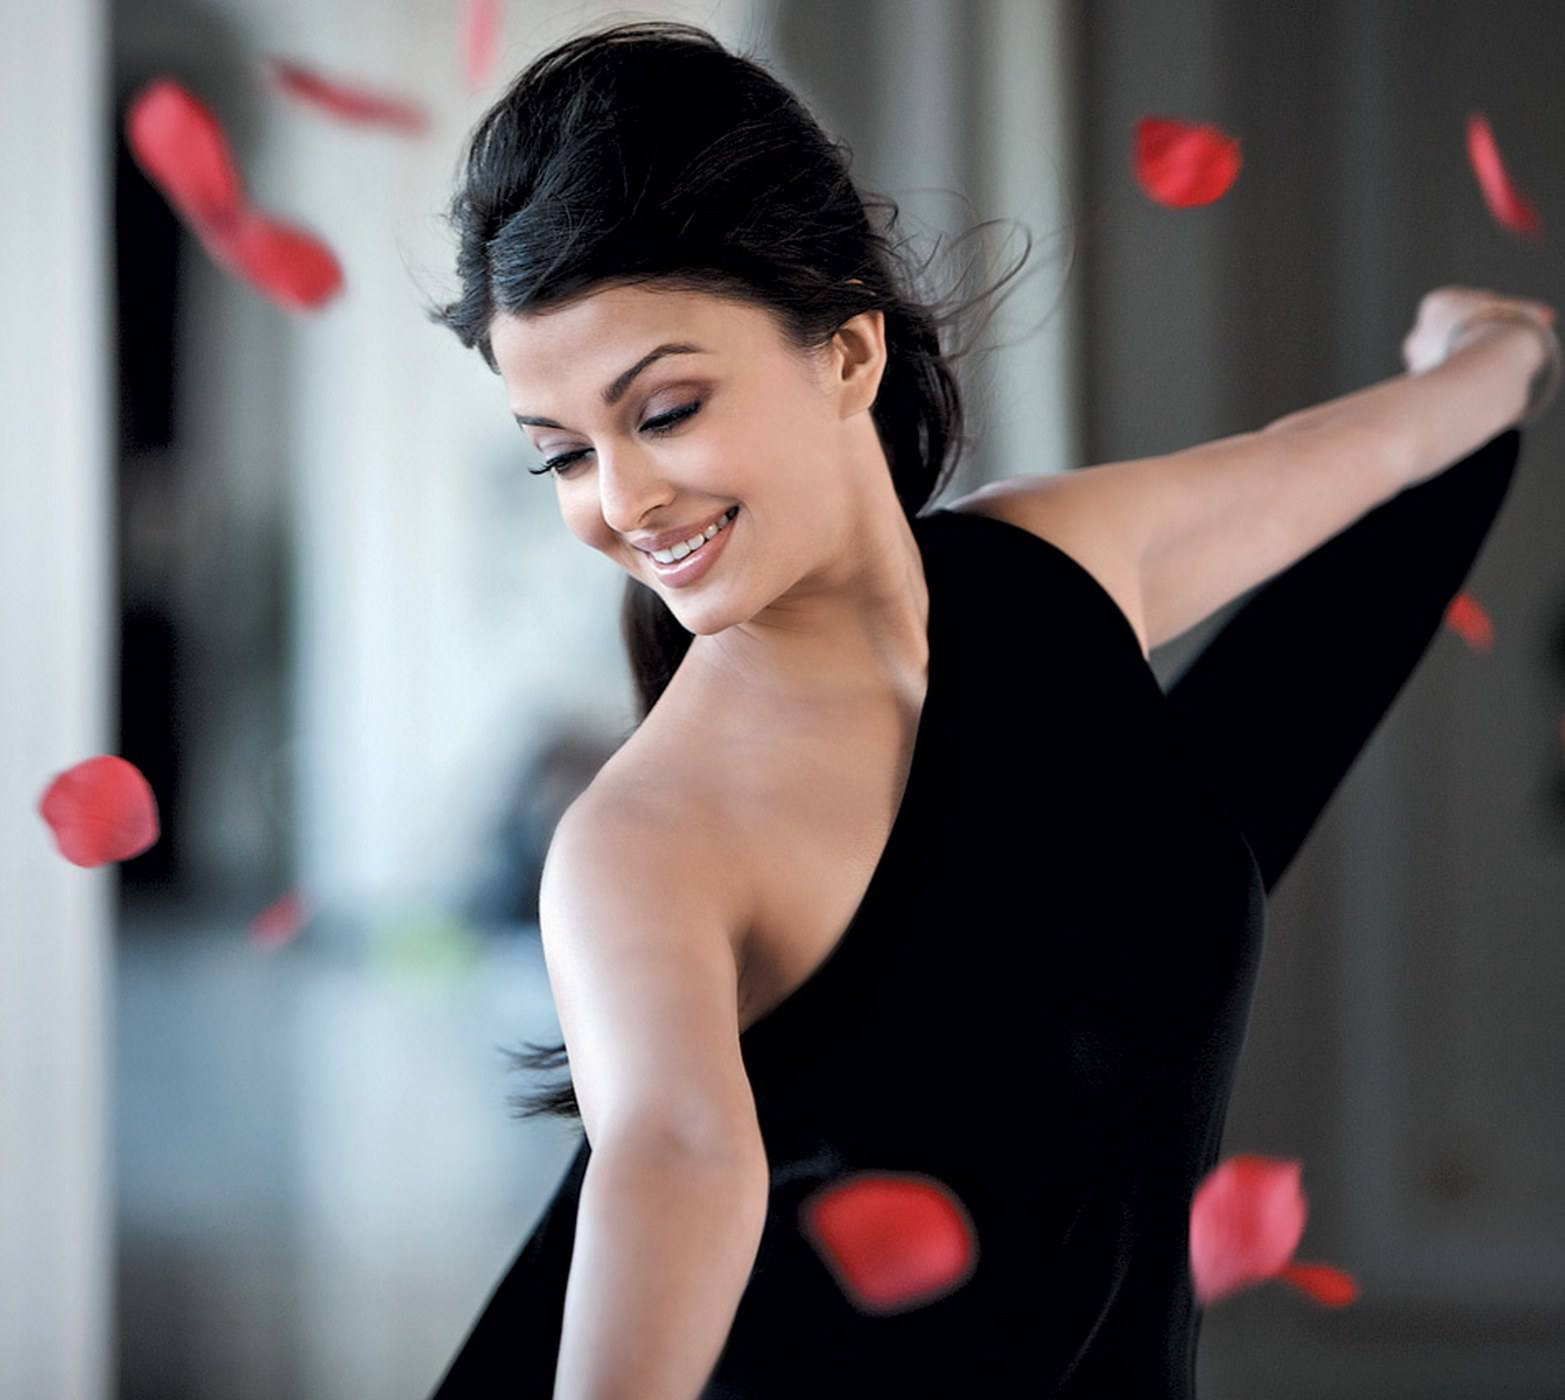 aishwarya_rai-wallpaper_2147483672